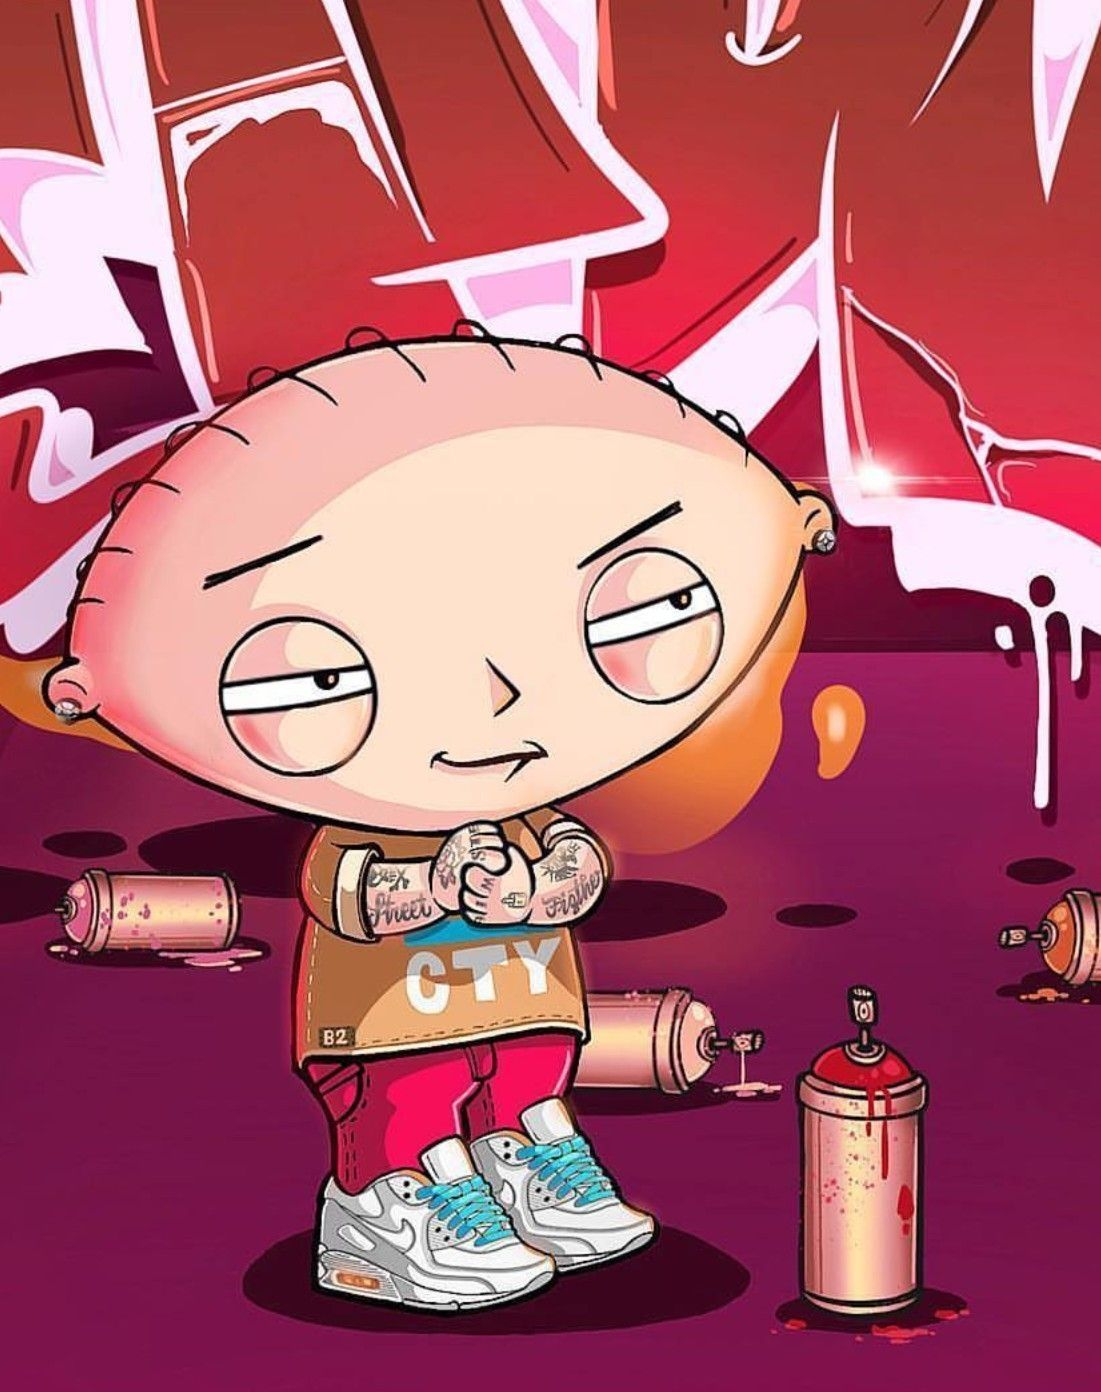 Family Guy Supreme Wallpapers Wallpaper Cave with The